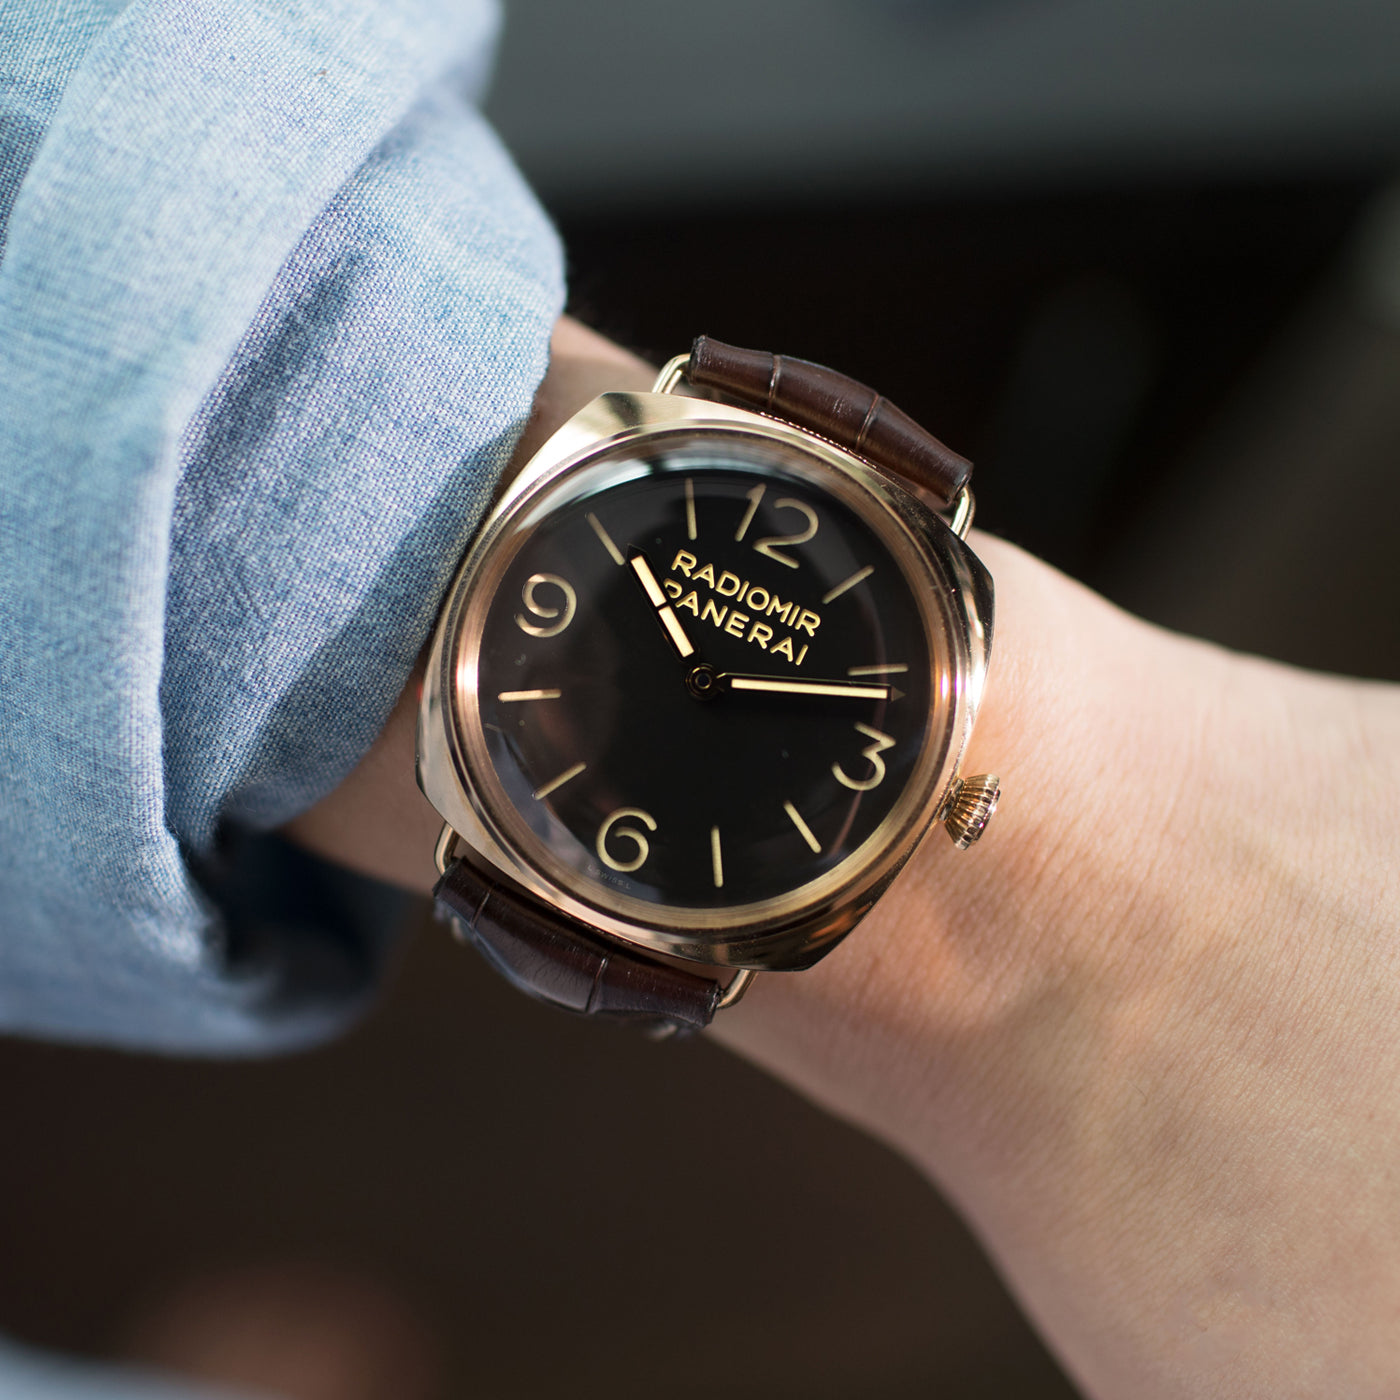 Panerai Radiomir 3 Days Oro Rosso Pam 379 S Song Vintage